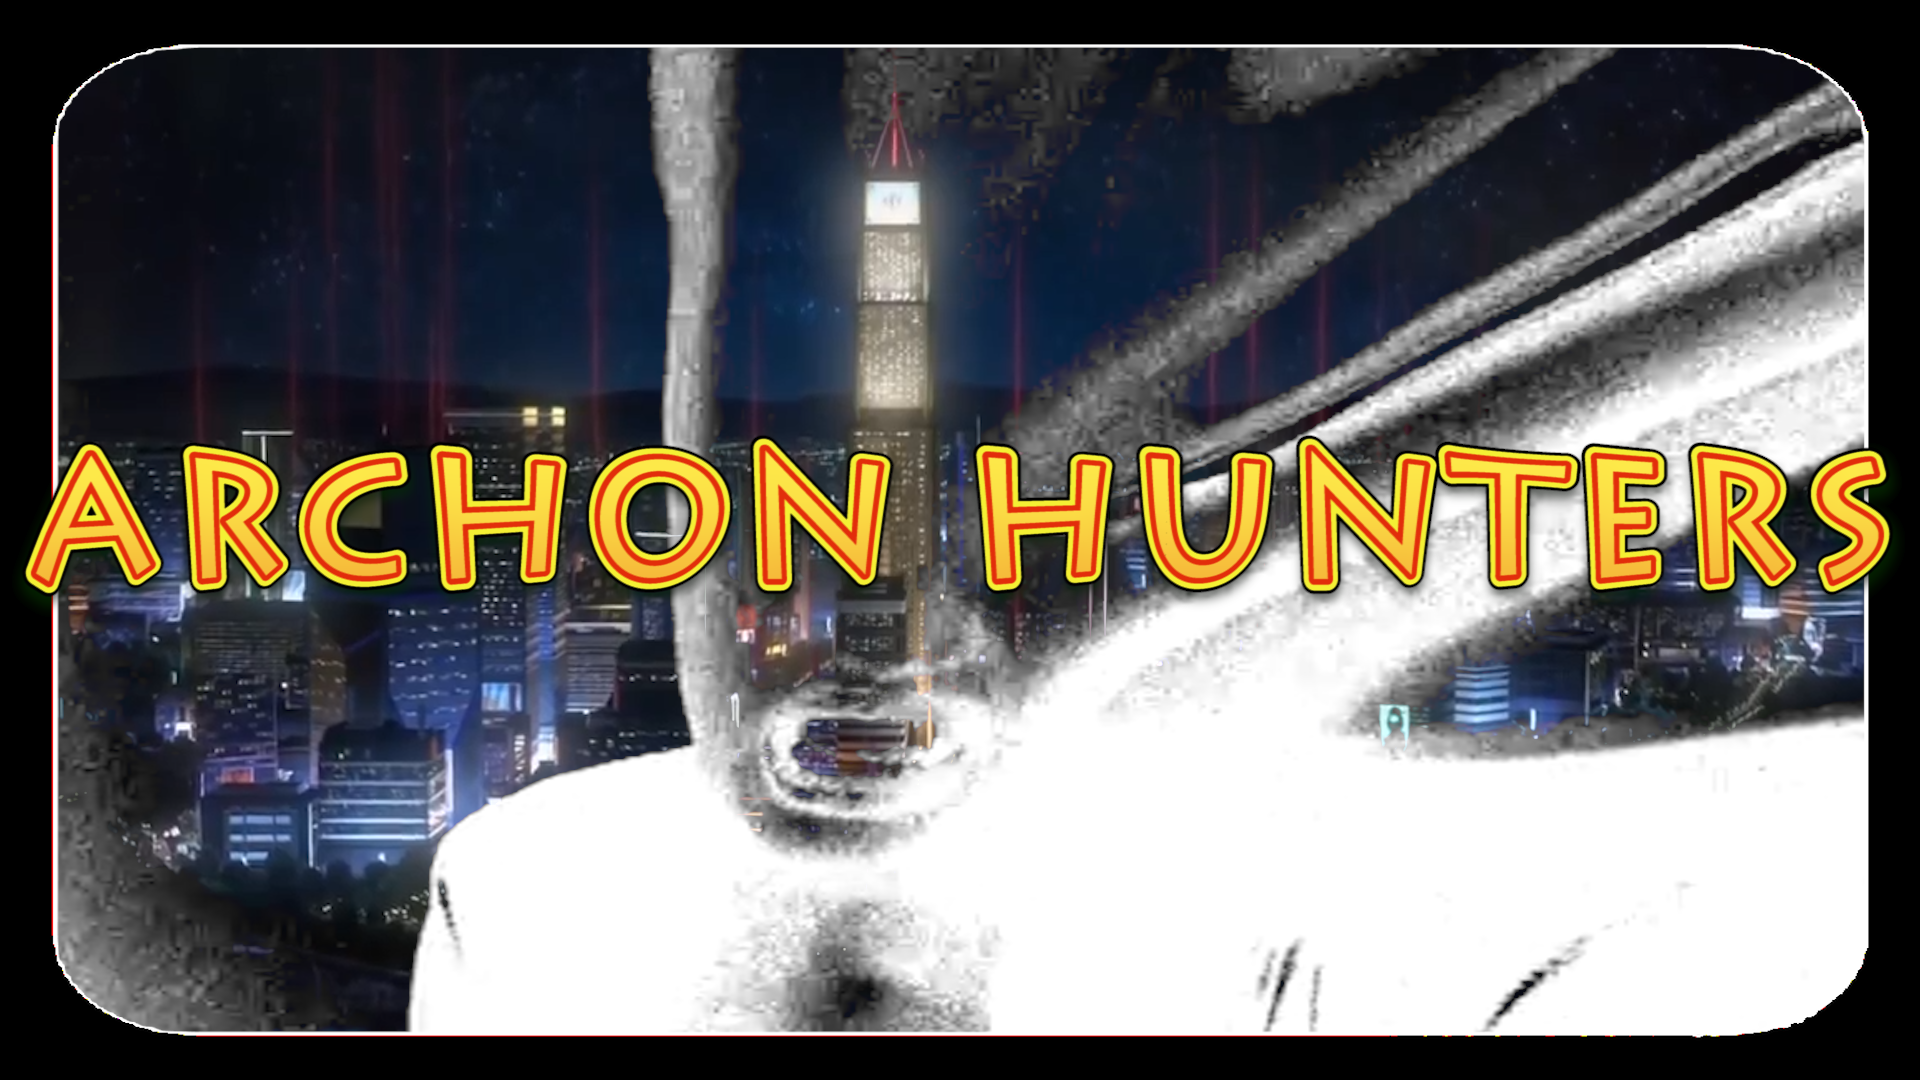 THE MOST SUPPRESSED MESSAGE THAT HAS EVER EXISTED  ON THIS PLANET | THE ARCHON HUNTERS